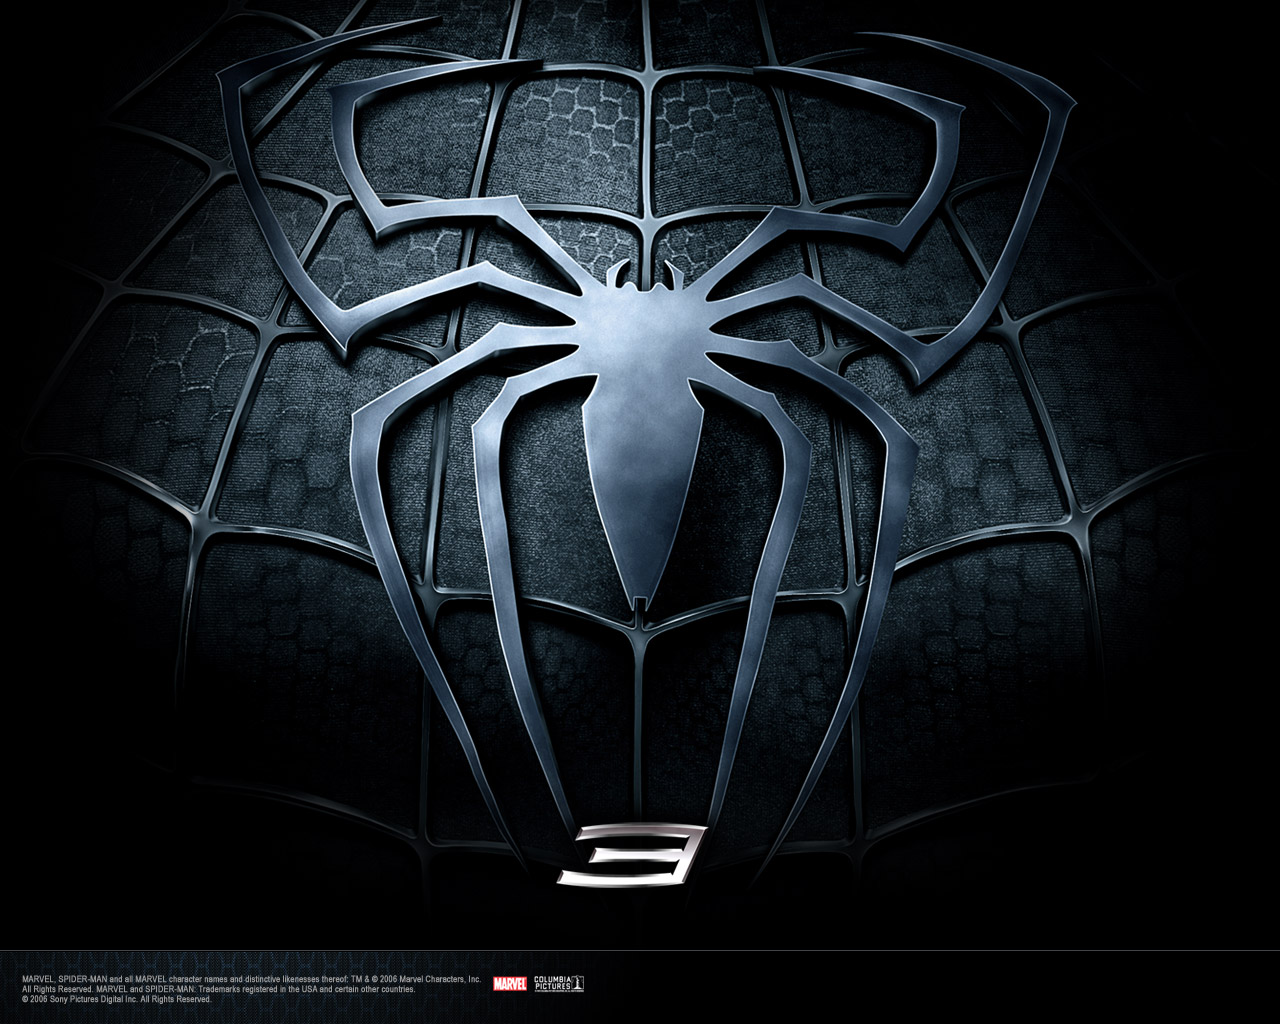 Spiderman 3 Wallpaper Download